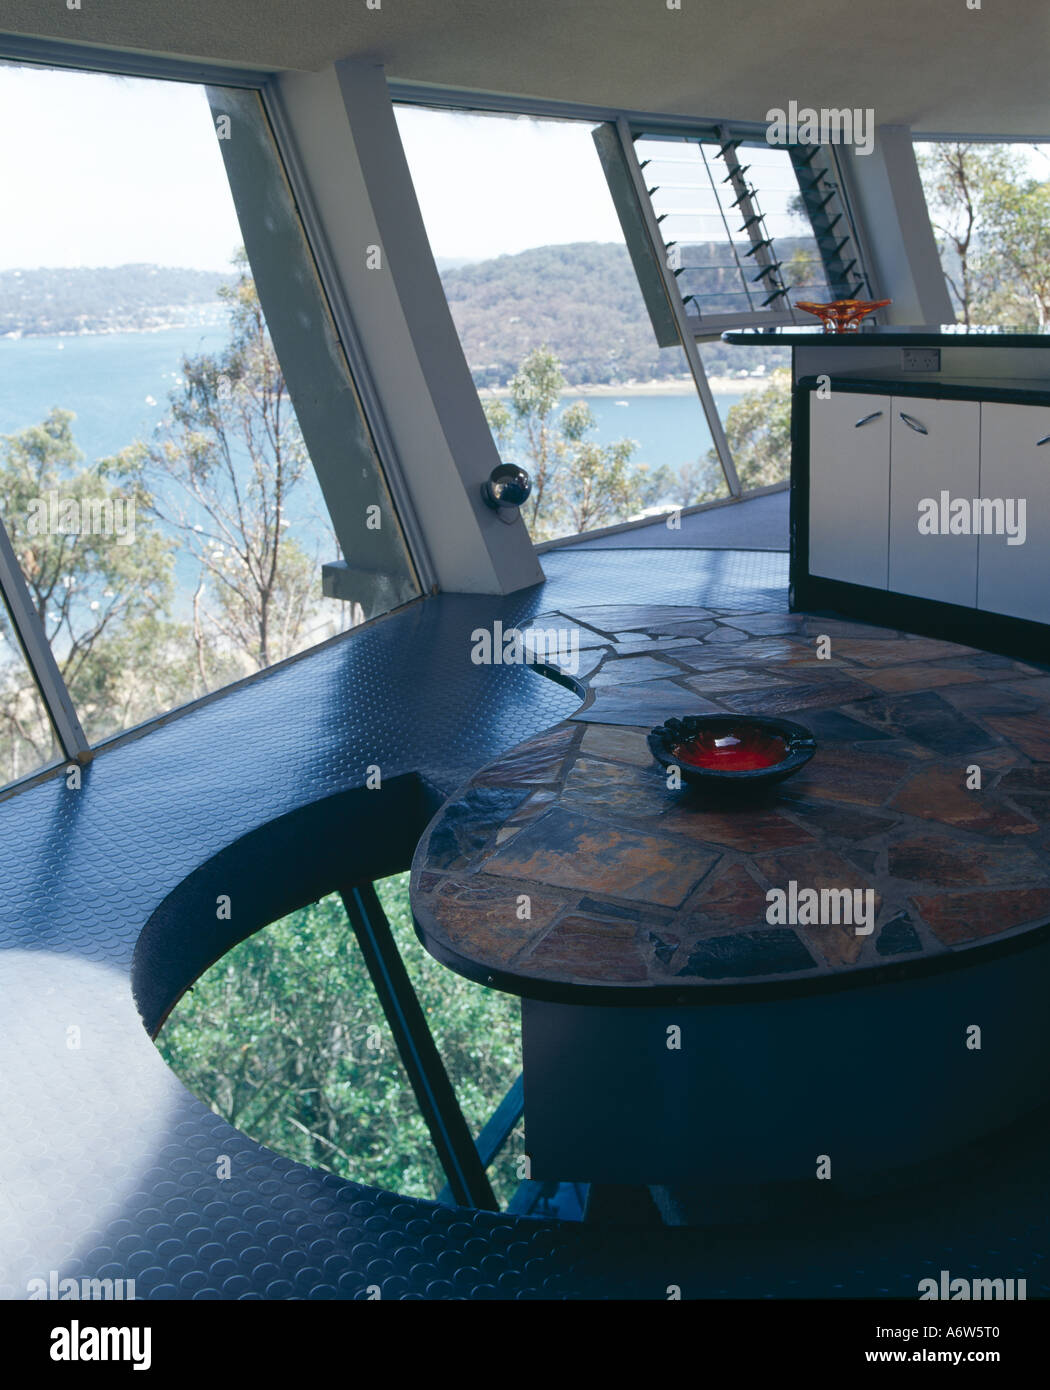 Spaceship House, near Sydney, New South Wales, 1963. Swivelling kidney shaped table that reveals the stairwell below. - Stock Image